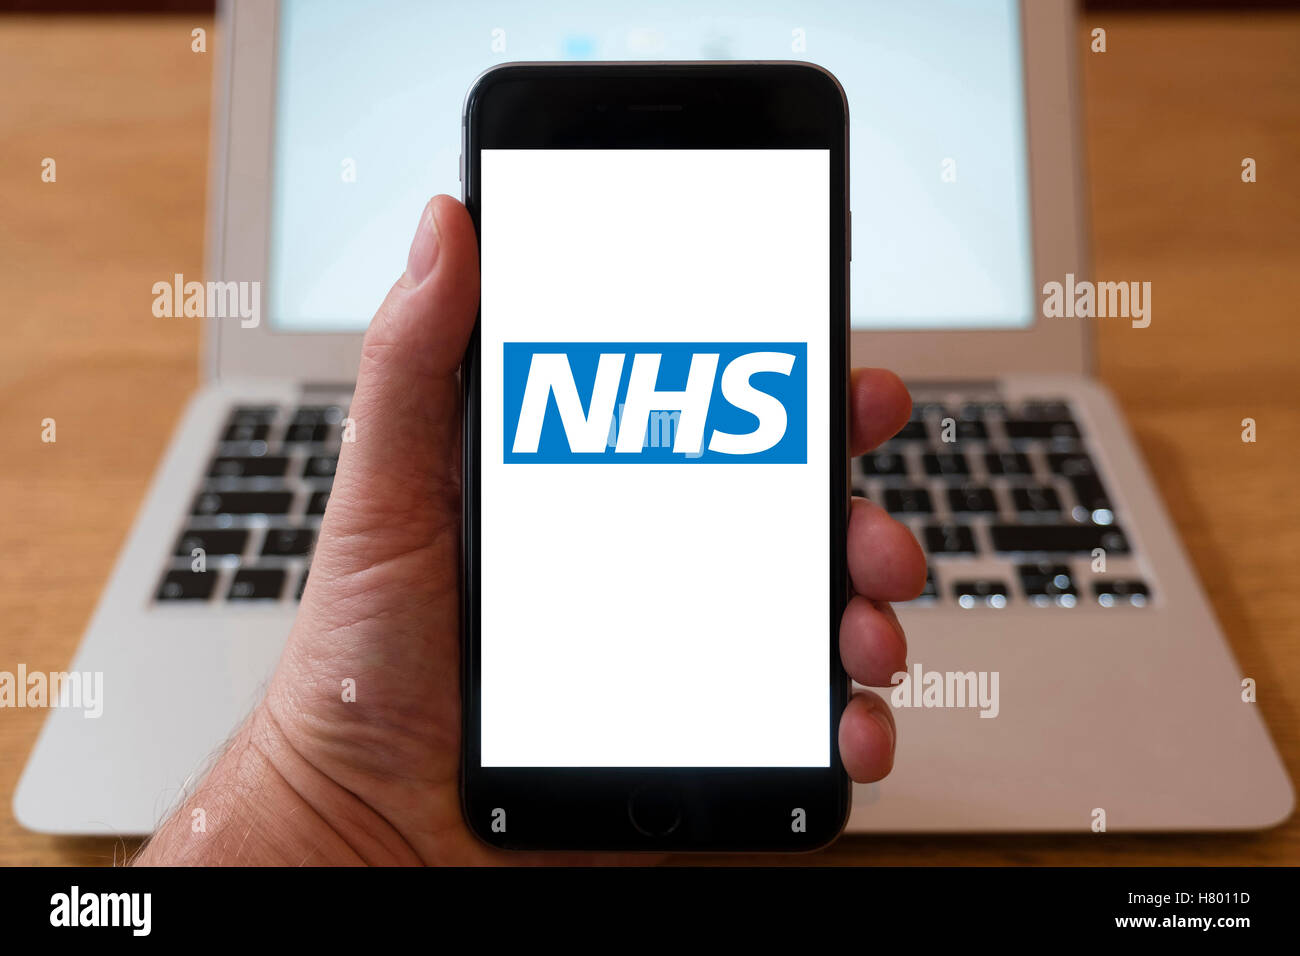 Using iPhone smartphone to display logo of NHS , National Health Service website - Stock Image